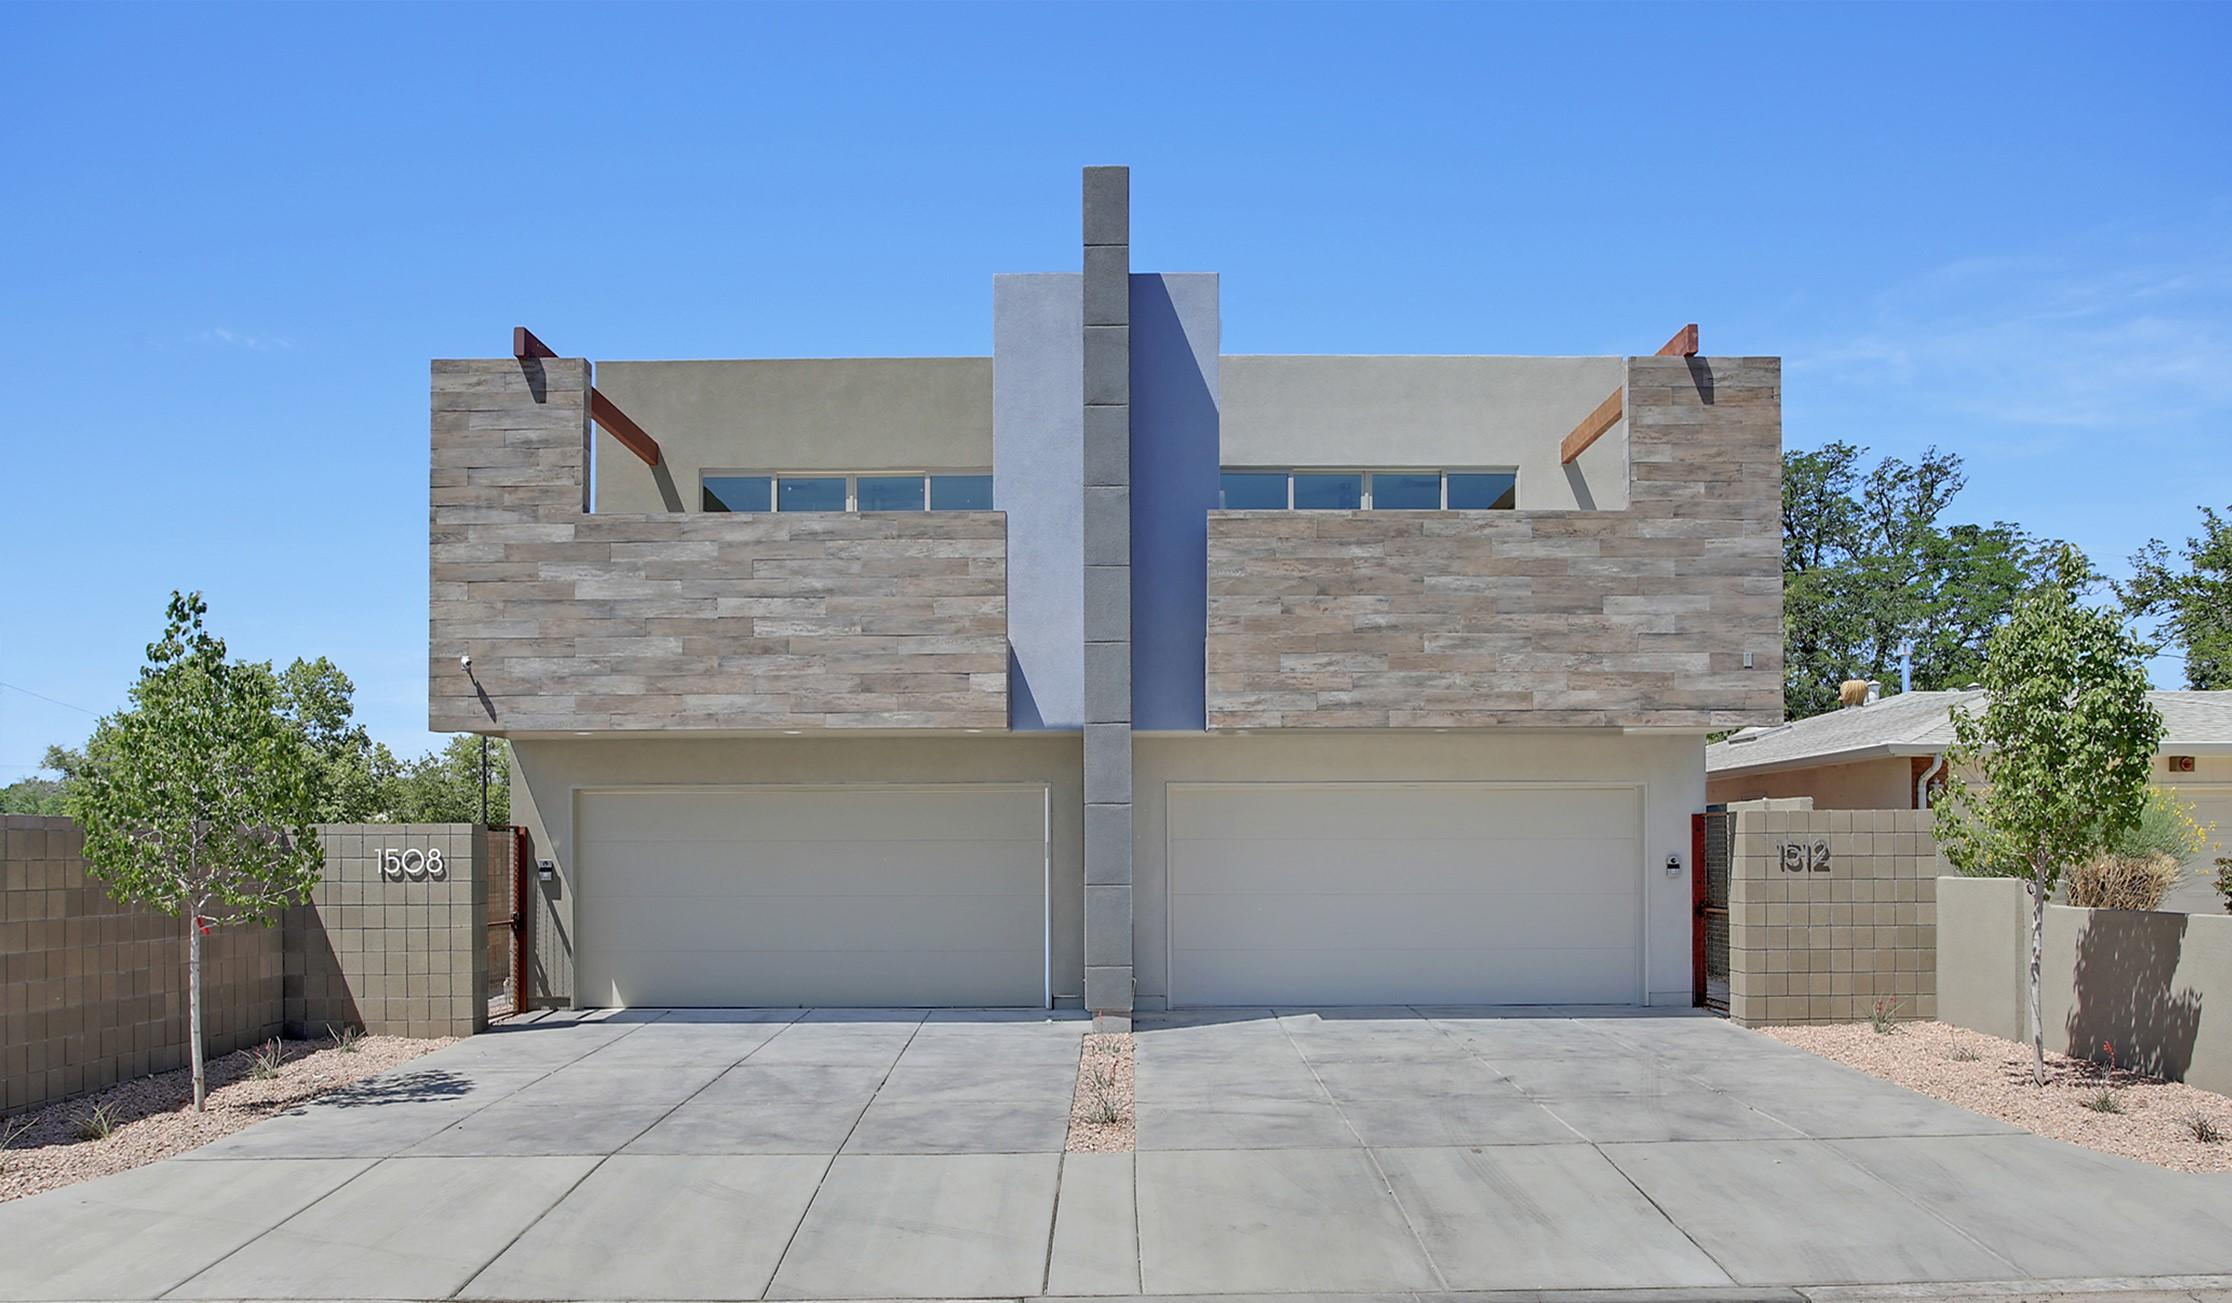 Designed by Architect William Osofsky, located in the desirable ABQ Country Club, is a Multigenerational State of the Art Solar Townhome. 2 Dwellings under 1 Roof, or 1 large home with opulent guest/in-law quarters. The Garden level is 1300 SF with 2 Bedrooms, 2 Baths, a Premium Kitchen, Fireplace, Laundry, with all rooms opening to Courtyards. The Upper Floor has 1600 SF with 2 Bedrooms, 2 Baths, Gourmet Kitchen, Fireplace, Laundry, a 14'x19' Deck & 2 Balconies. Light filled rooms with 9 ft. ceilings, 8 ft. glass doors connect seamlessly to the outdoors. The Solar System saves money combined with the Energy Efficient LG Split System HVAC in each room for customized comfort & temperature control. Perfect short term rental, live/work space, 1 large home or any combination of options.